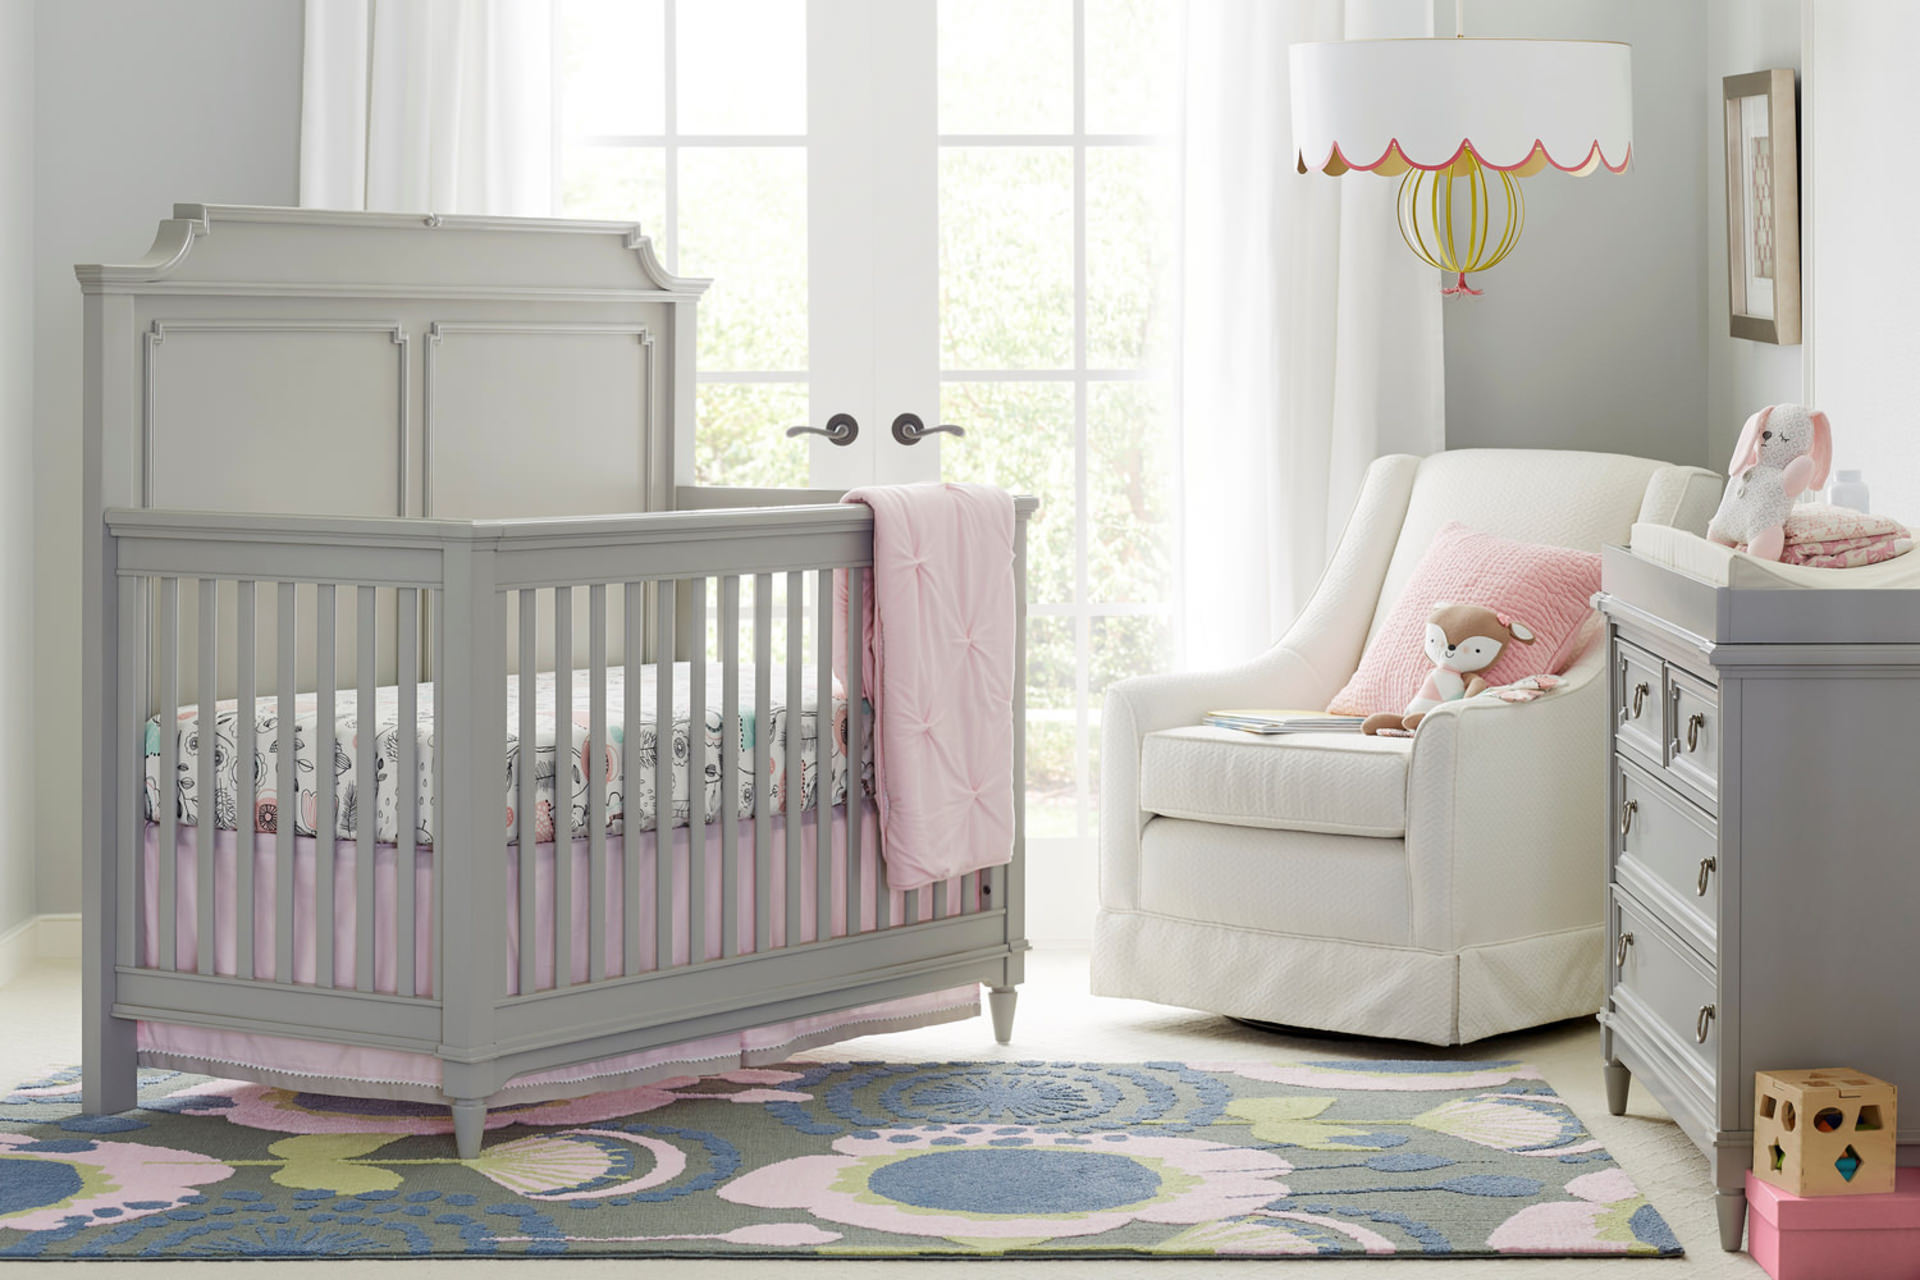 nursery trends for 2018 design blog by hom furniture 10146 | 412019 1